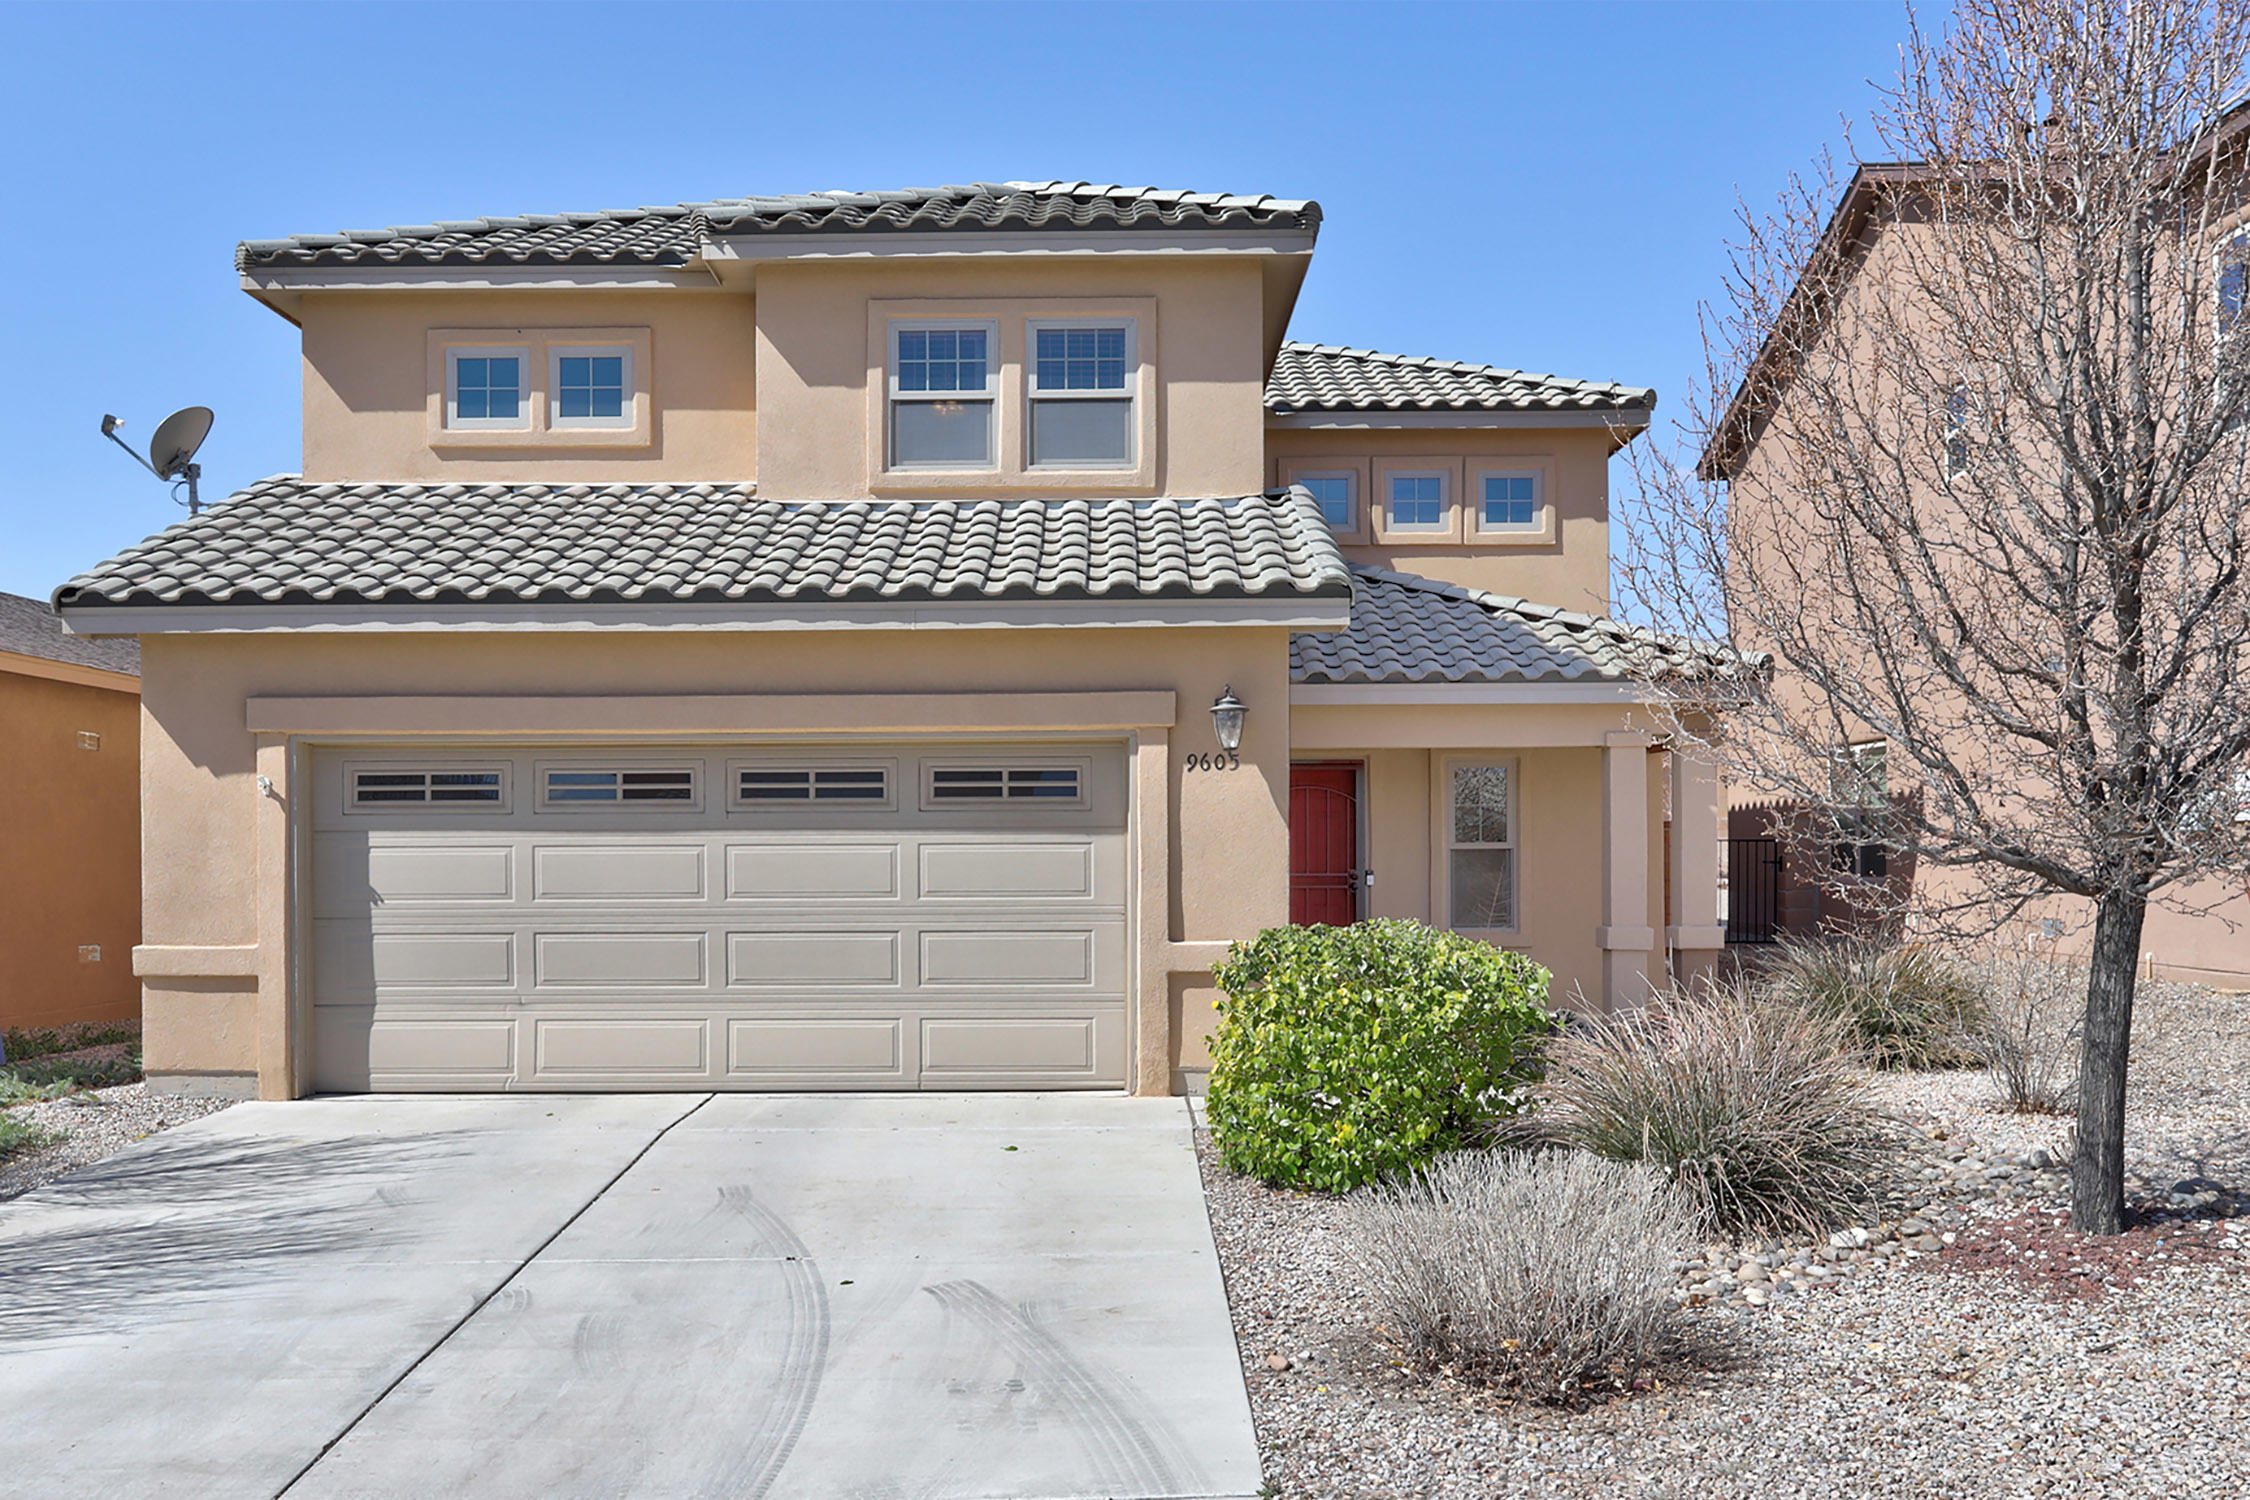 Amazing sq ft in this charming 3  bedrooms with  huge loft  upstairs could be fourth bedroom- Powder bath down with 2 full baths upstairs - owner's suite with garden tub and separate shower- open floor plan with lots of natural light. Large island in kitchen- wonderful dining area & all  open to living area!!Great gathering space  in backyard.The house is Certified Green BuildNM Gold! HERS rating 50+ Energy Star Certified! On demand water heater and water filtration system.